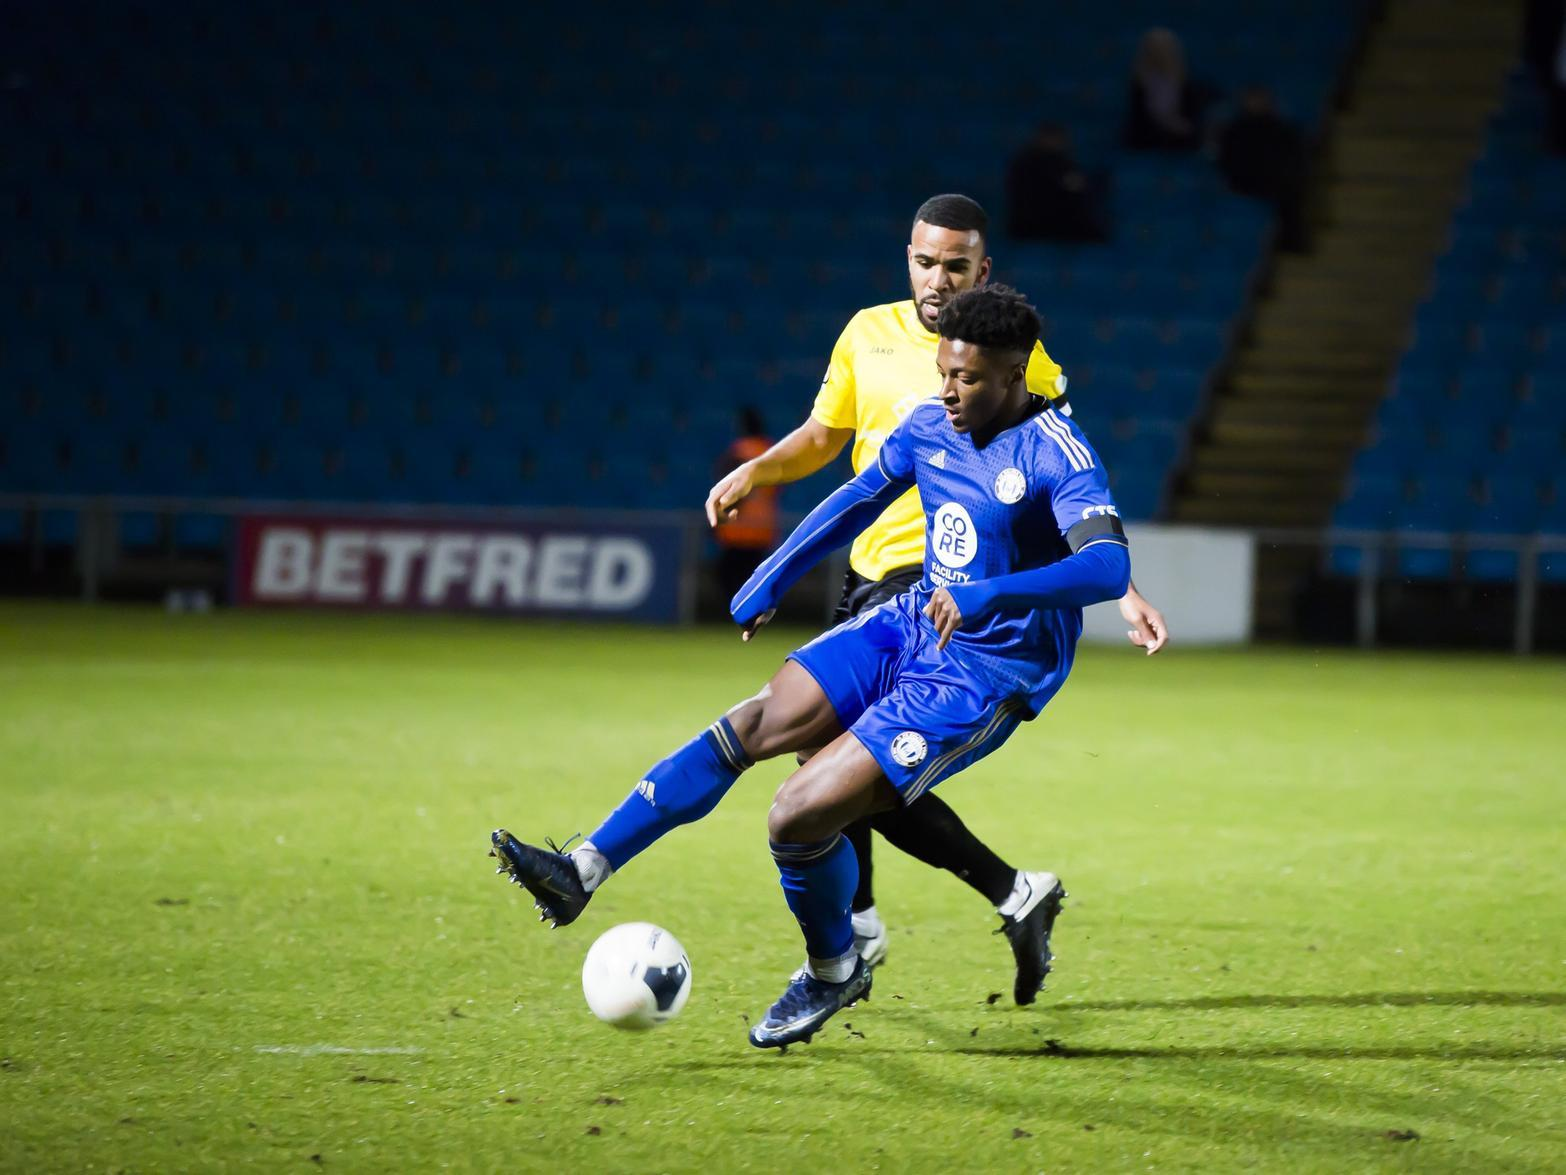 FC Halifax Town: Wild dismisses rumours surrounding striker Devante Rodney's future